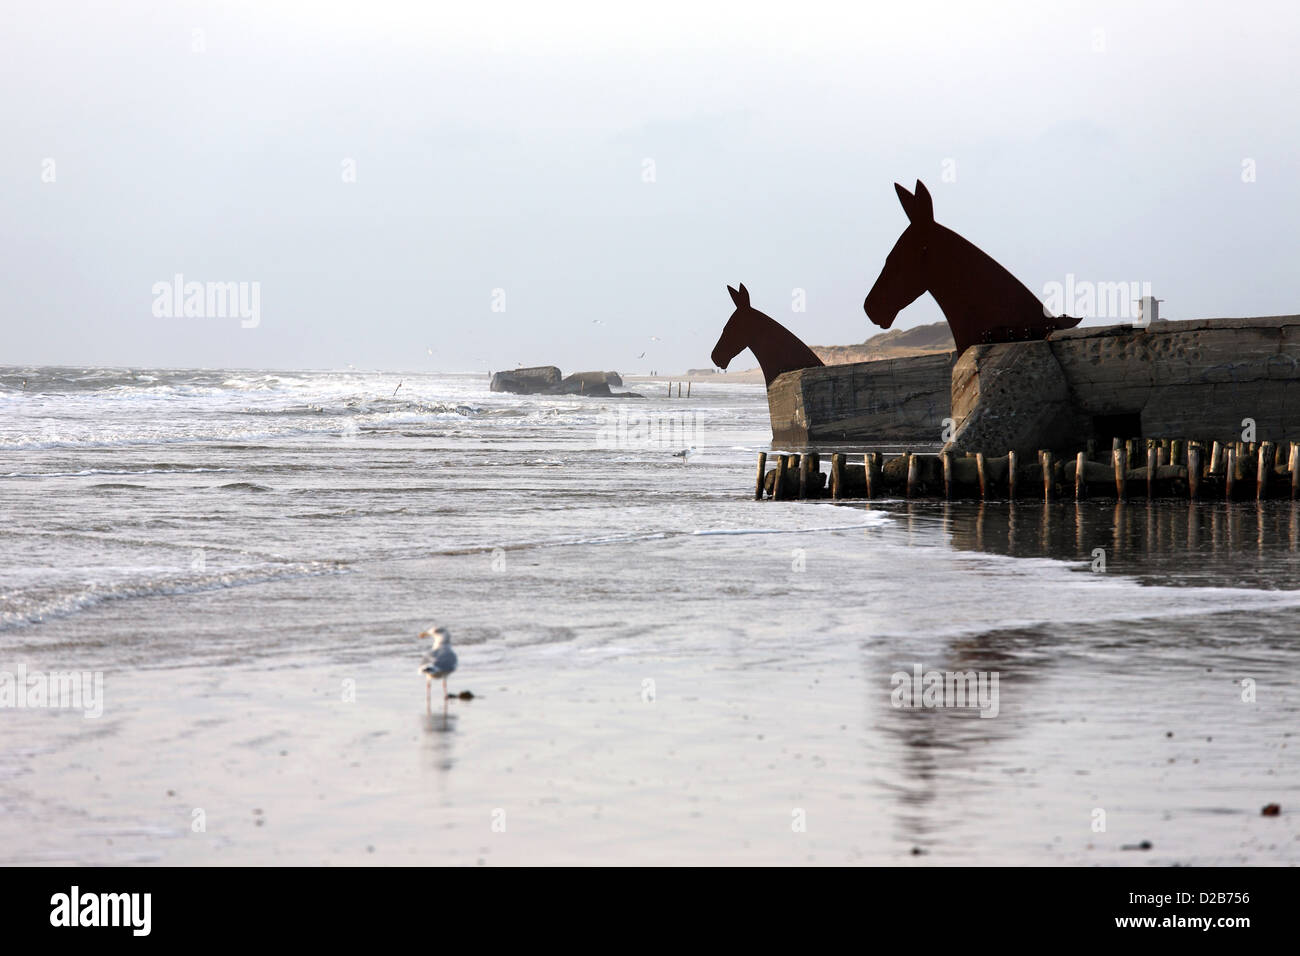 blavand denmark hitler 39 s atlantic wall bunker of irony with horse stock photo 53107522 alamy. Black Bedroom Furniture Sets. Home Design Ideas